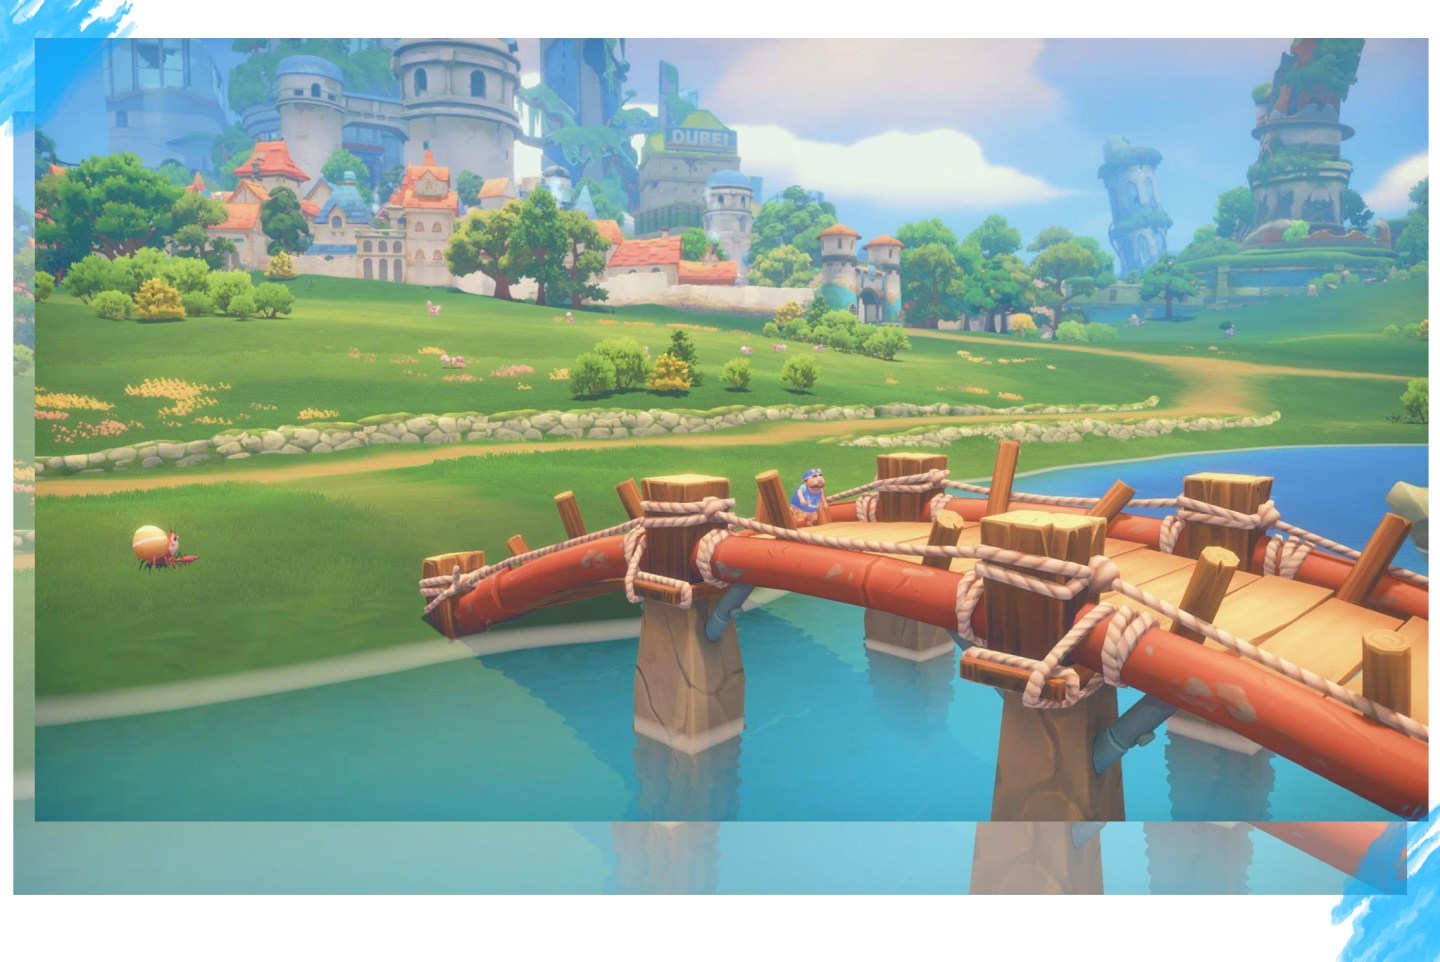 My Time at Portia 2